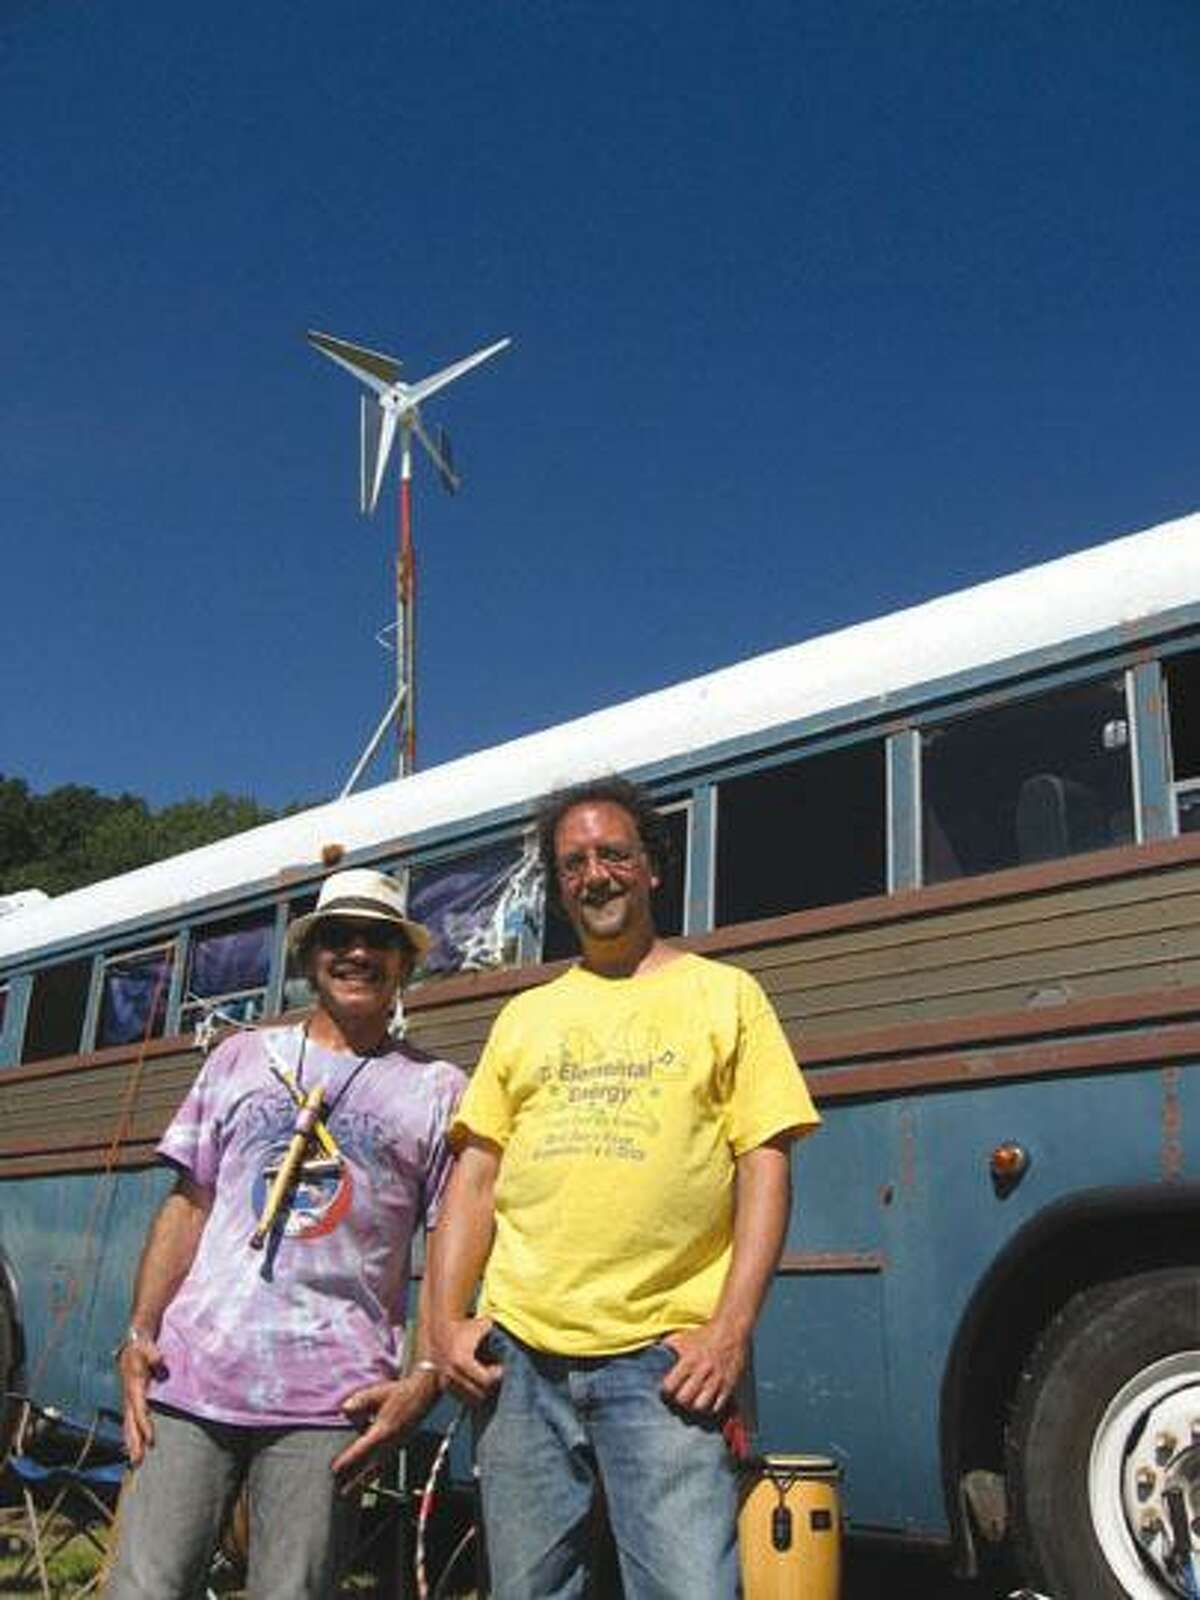 Ray Gelinas (left) and Joe Geloso (right) stand in front of Gelinas' bus, which is partially run by a wind turbine. The two friends generated the idea for the Clean Energy Expo, held at Lorenz Studios in Morris on Aug. 28 and 29, with the idea of fusing arts and clean energy interests.